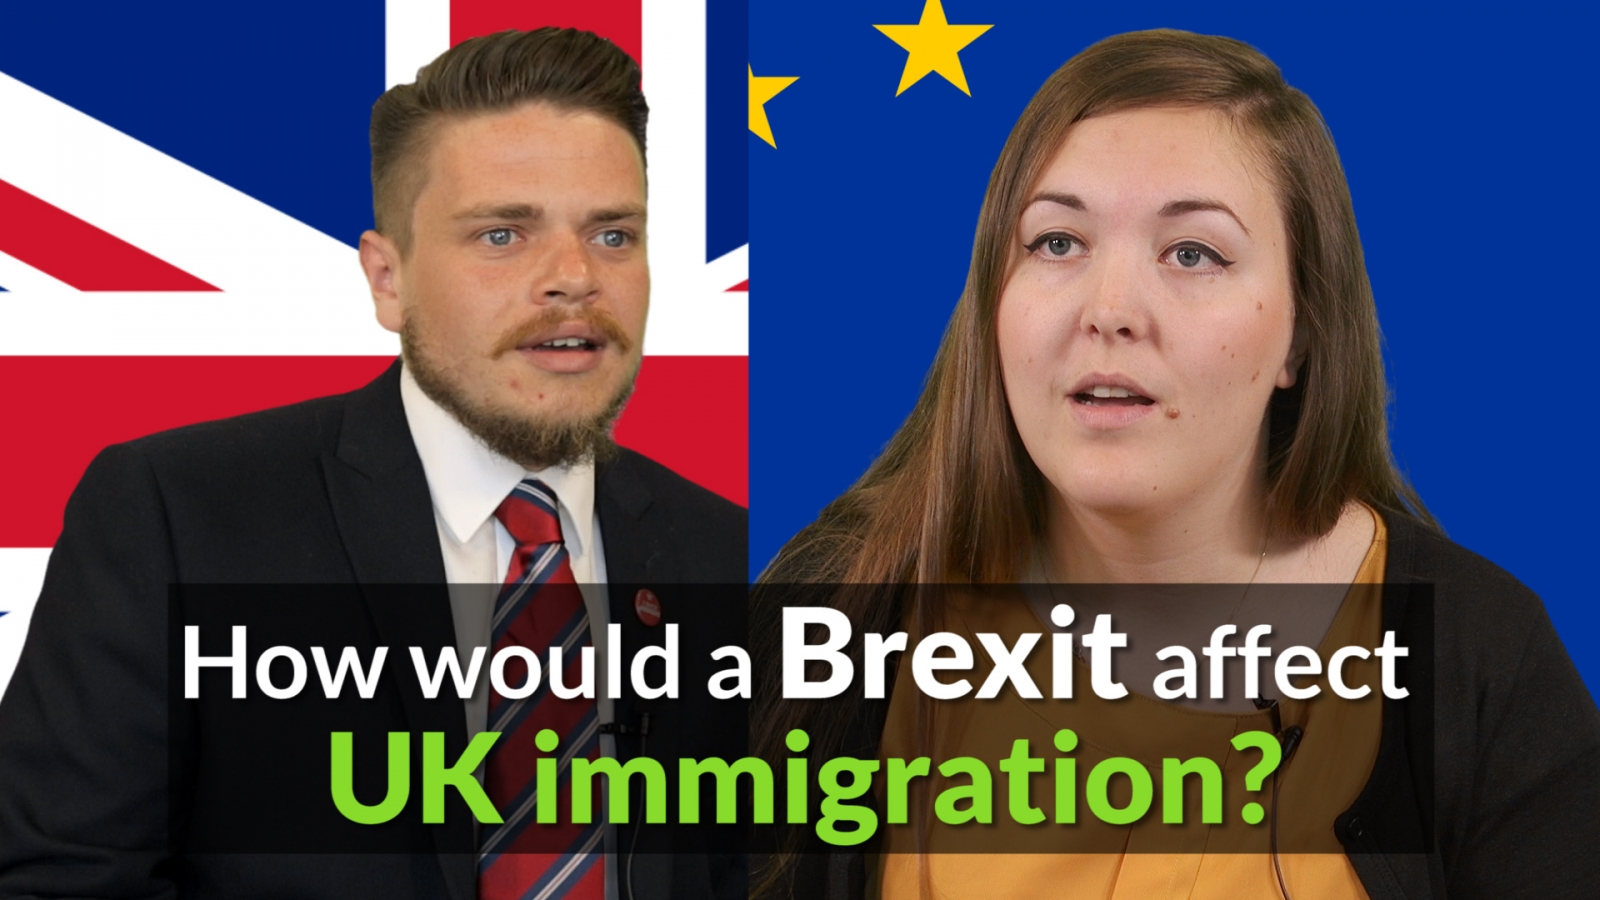 How would a Brexit affect UK immigration?